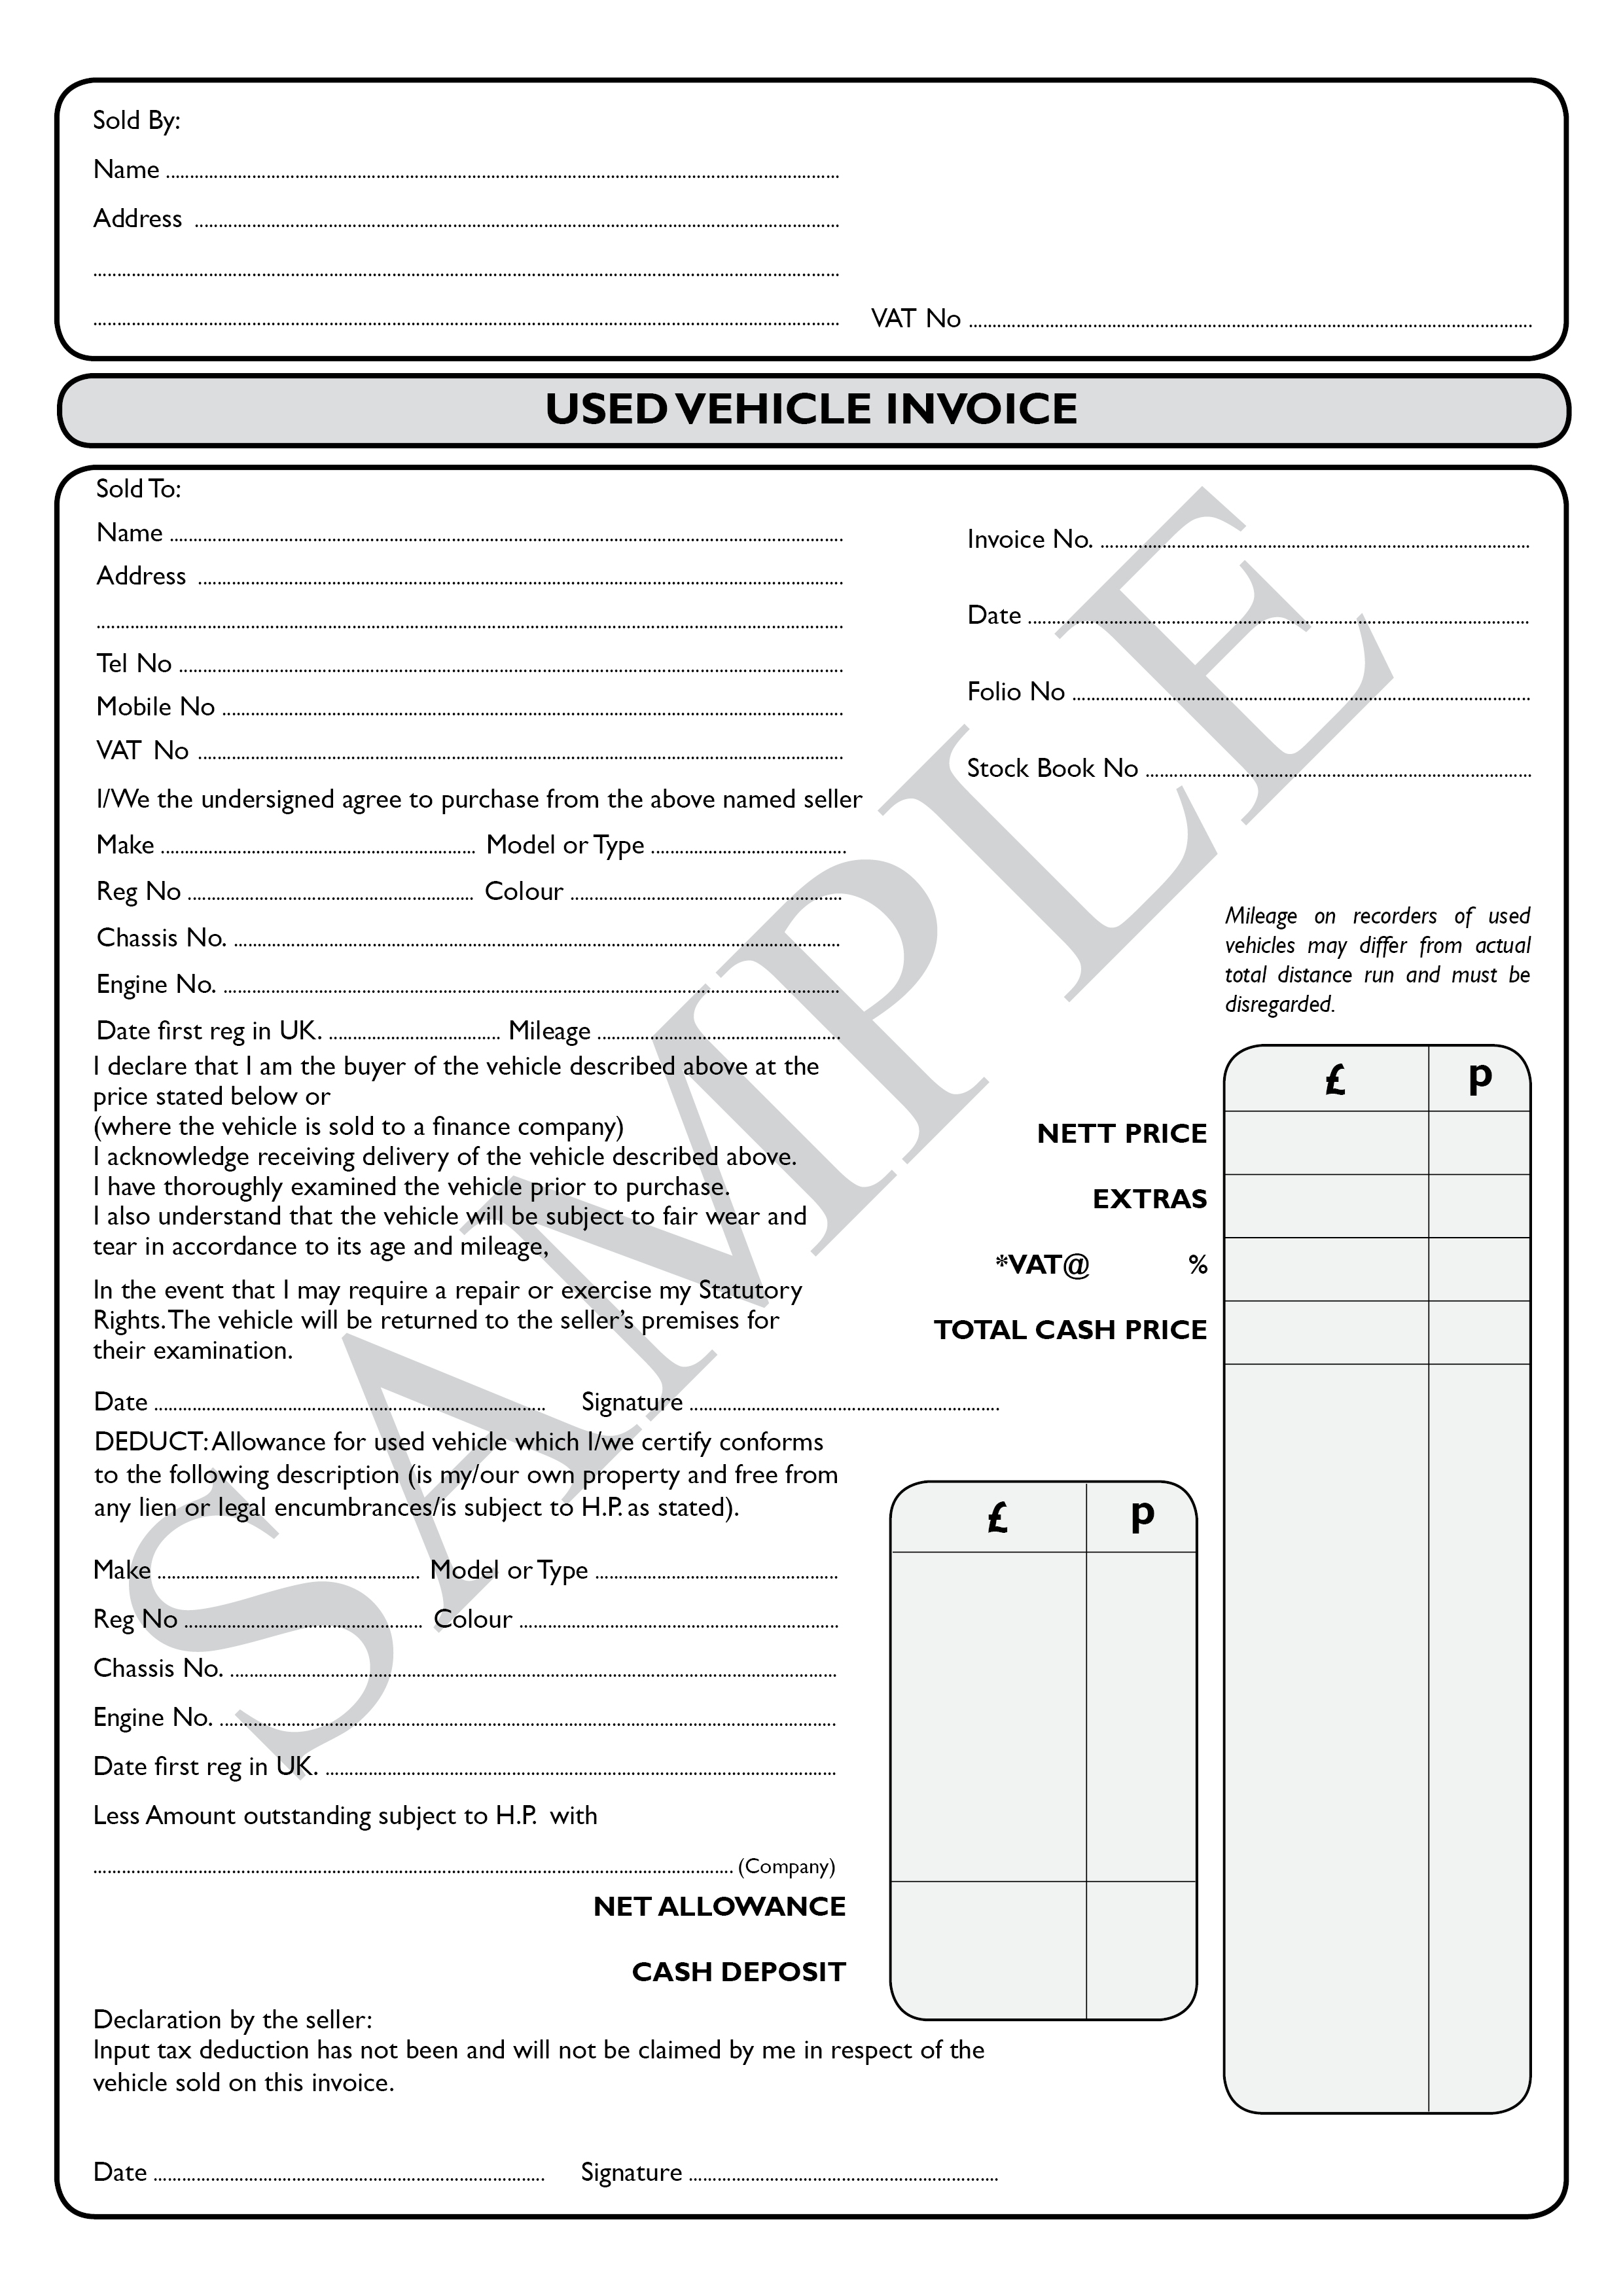 Bristol Based Suppliers Of Printed Stationery For All Business And - What is the invoice price of a new car for service business